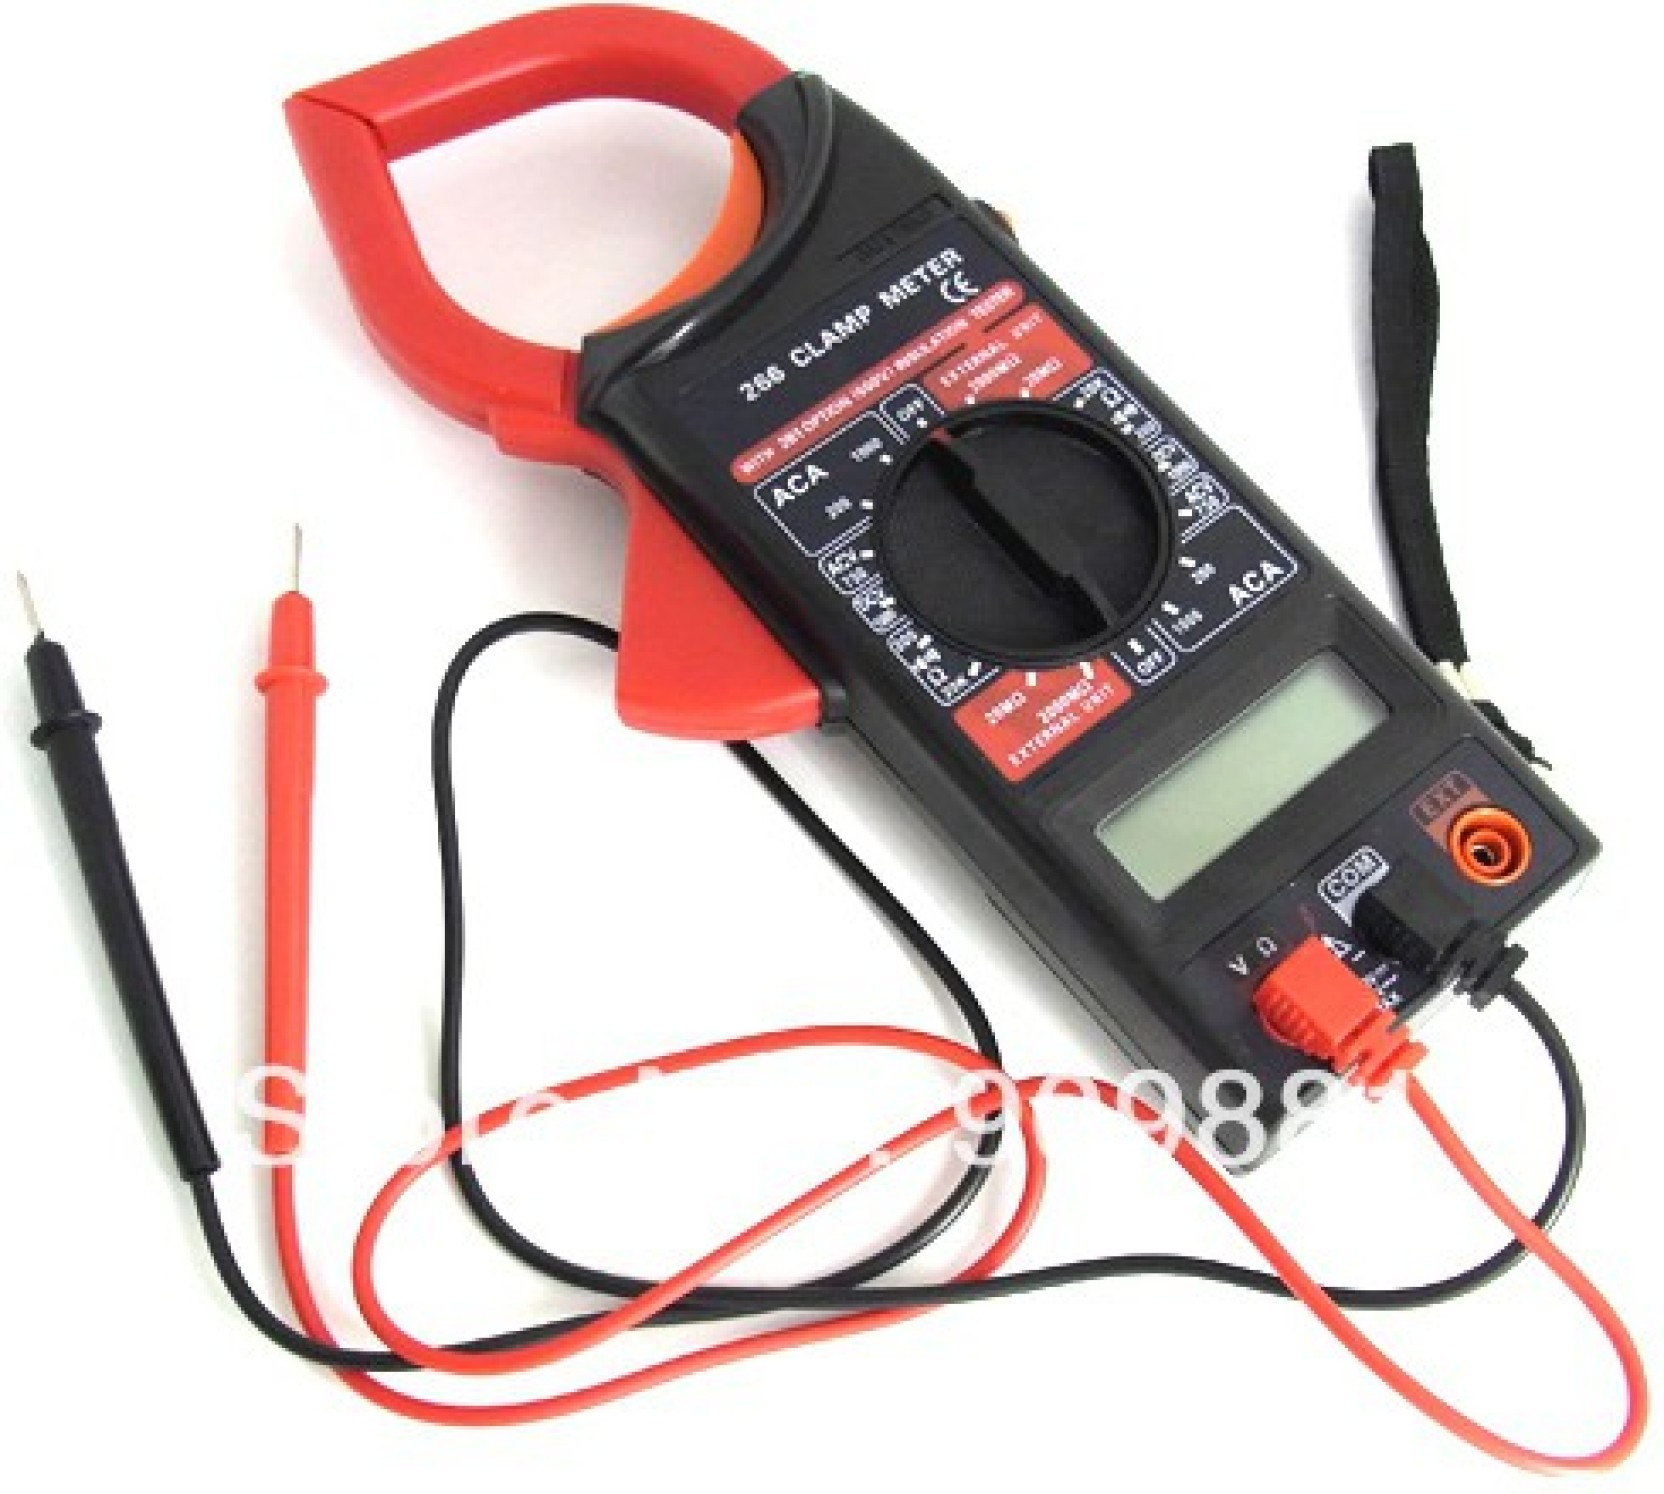 Haoyue DT266 Clamp Multimeter Non-magnetic Electronic